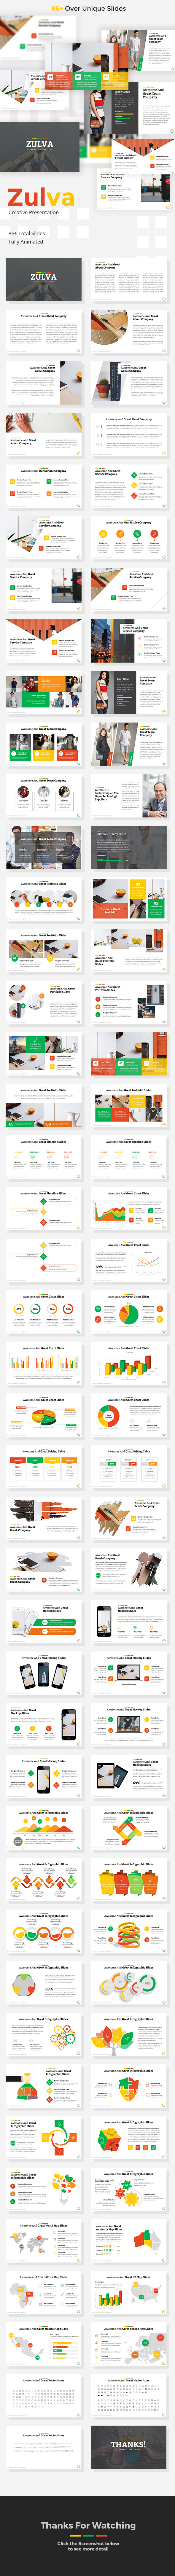 Zulva - Creative Powerpoint Template - Creative PowerPoint Templates